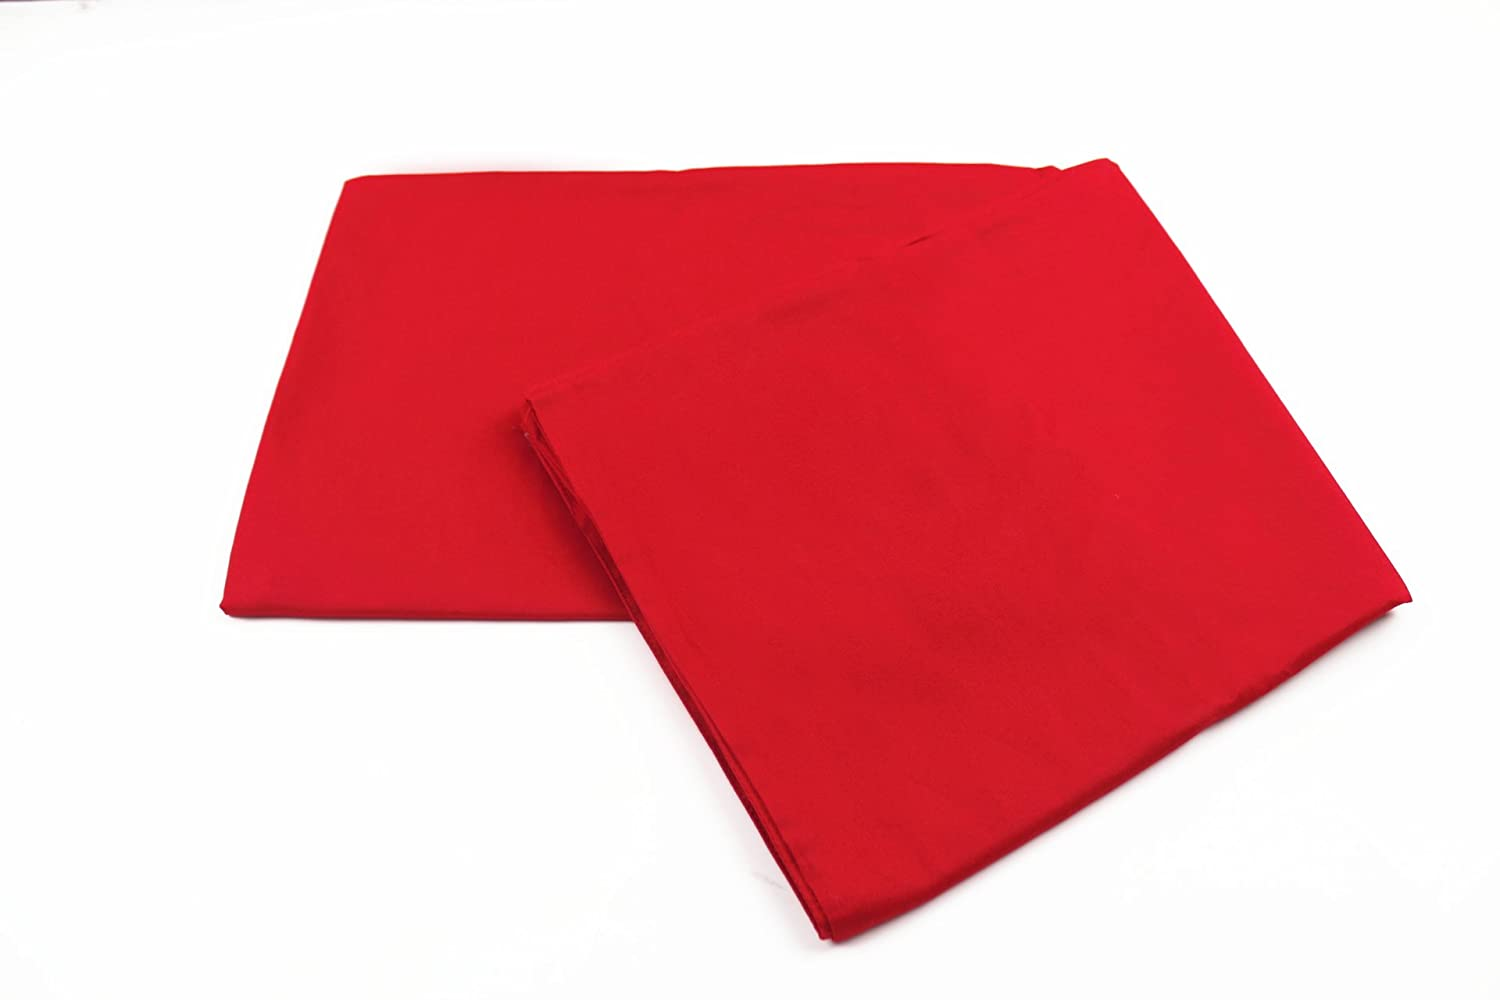 SET of 2 - Toddler Hypoallergenic Pillowcase Pillow Red Limited Special Price Opening large release sale